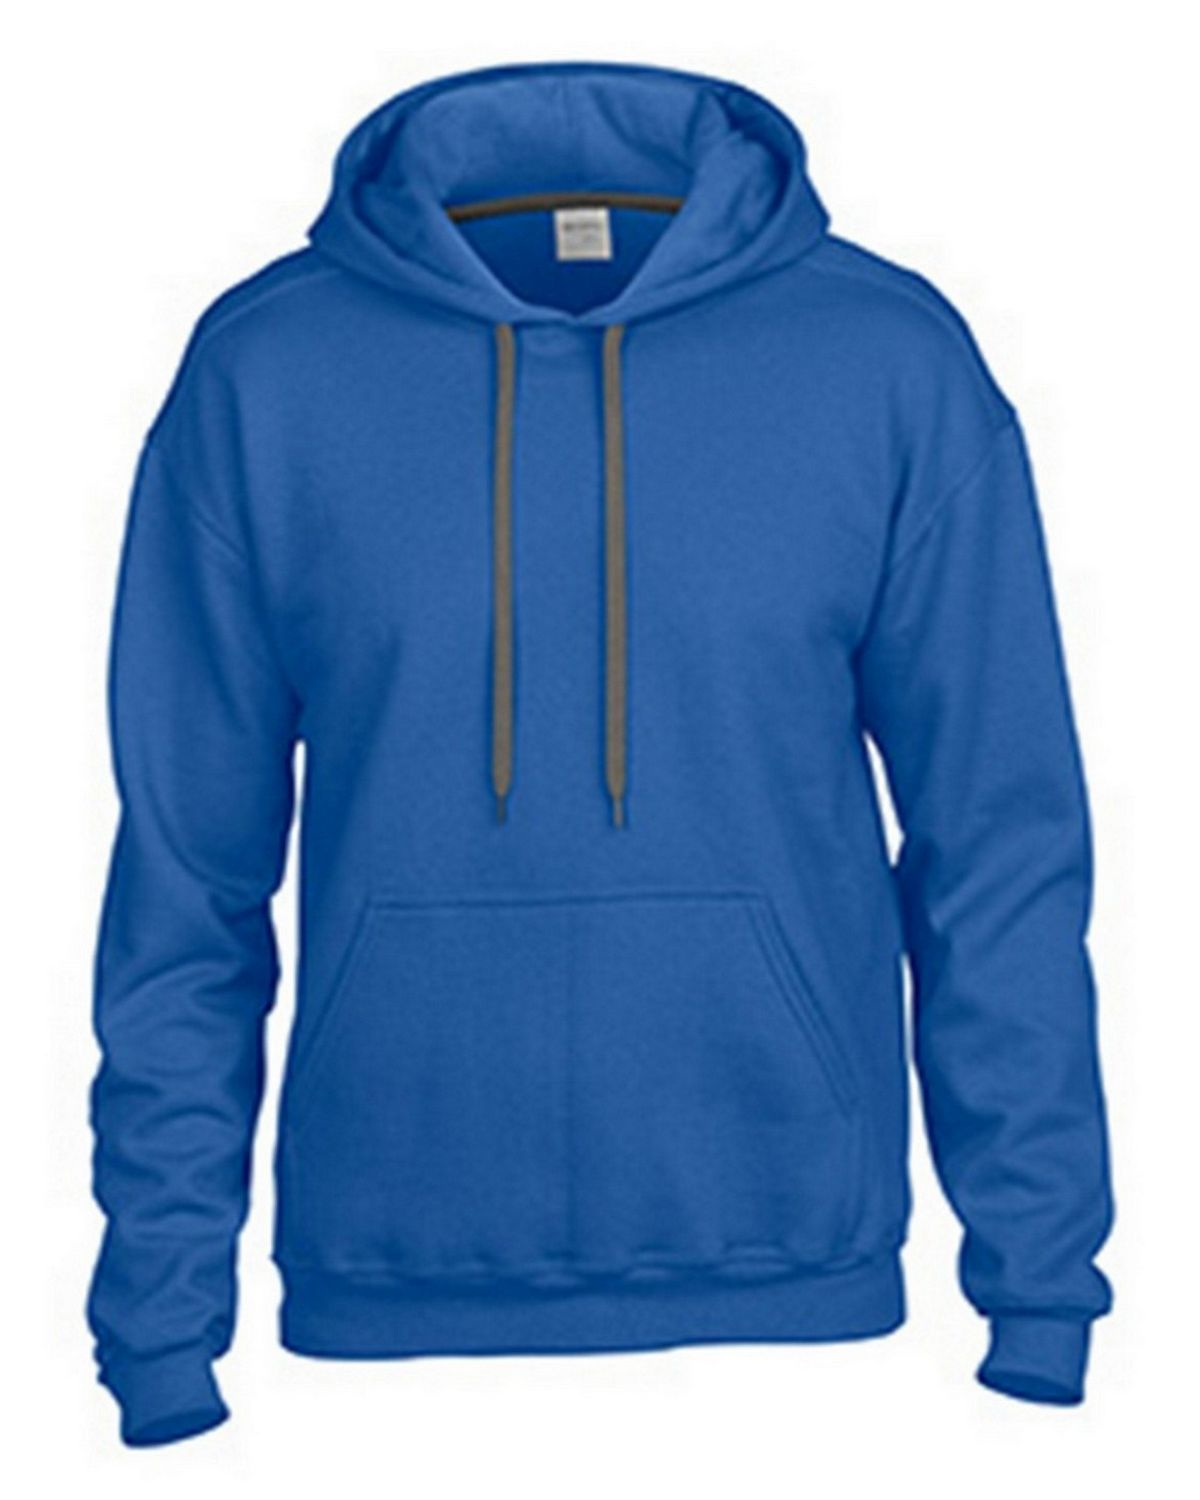 Gildan G92500 Adult Hooded Sweatshirt - Royal - S G92500